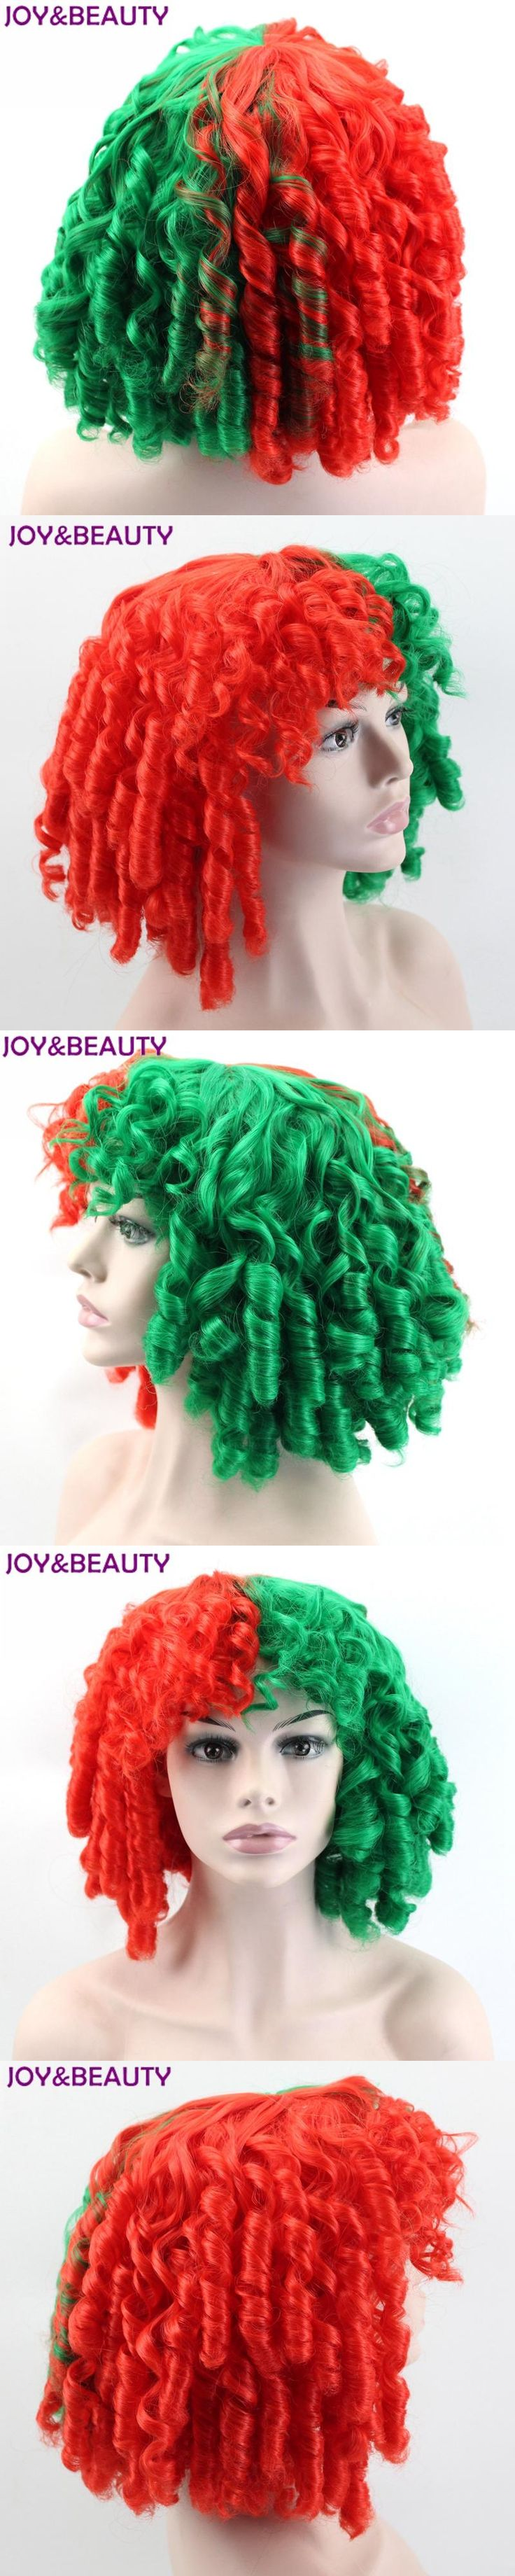 "JOY&BEAUTY Short Loose Wave Synthetic Hair Sia Wig Red/Green 14"" High Temperature Fiber For Cosplay Wigs"